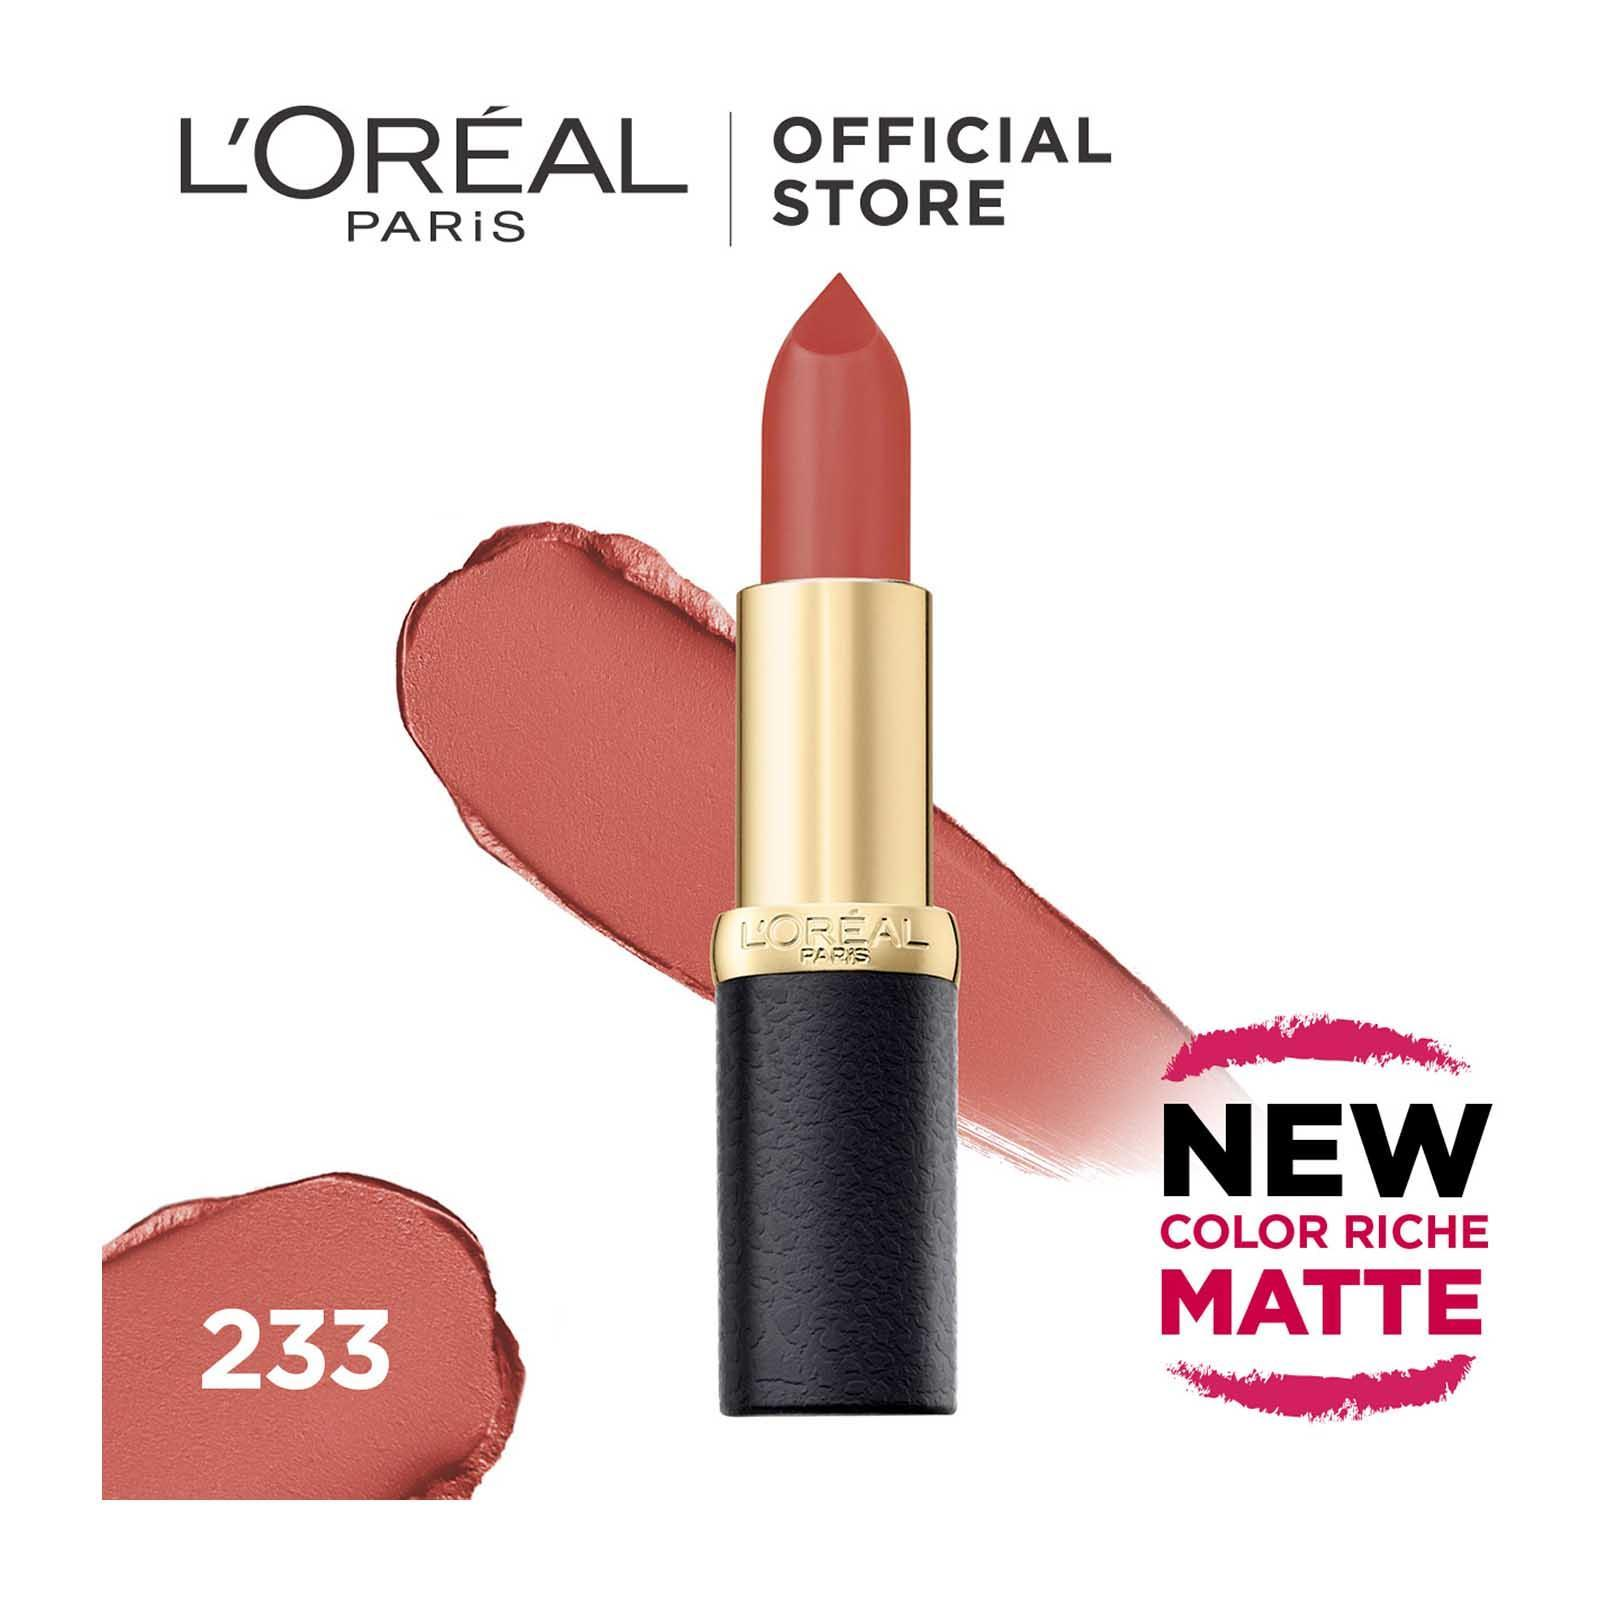 L'Oreal Paris Color Riche Matte 233 Rouge-A-Porter